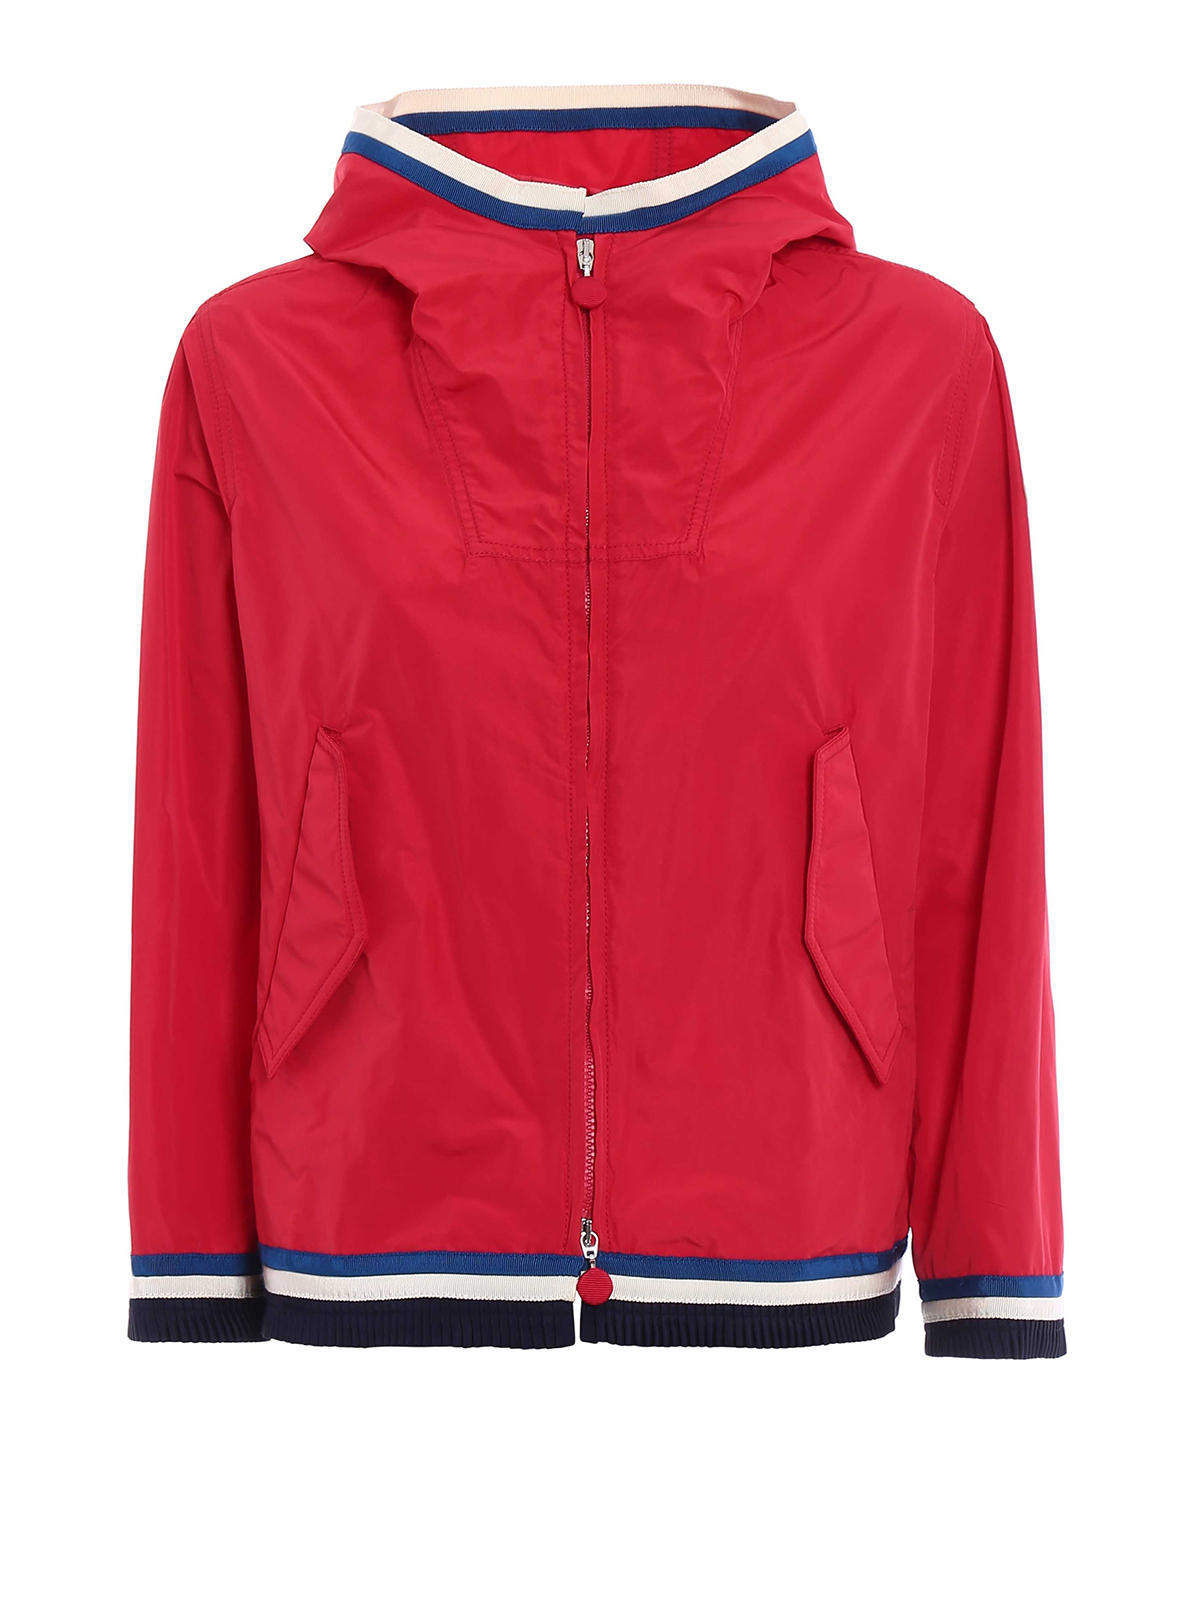 d6bf08e00cdc Moncler - Cleo hooded red windbreaker - casual jackets - D1 093 ...